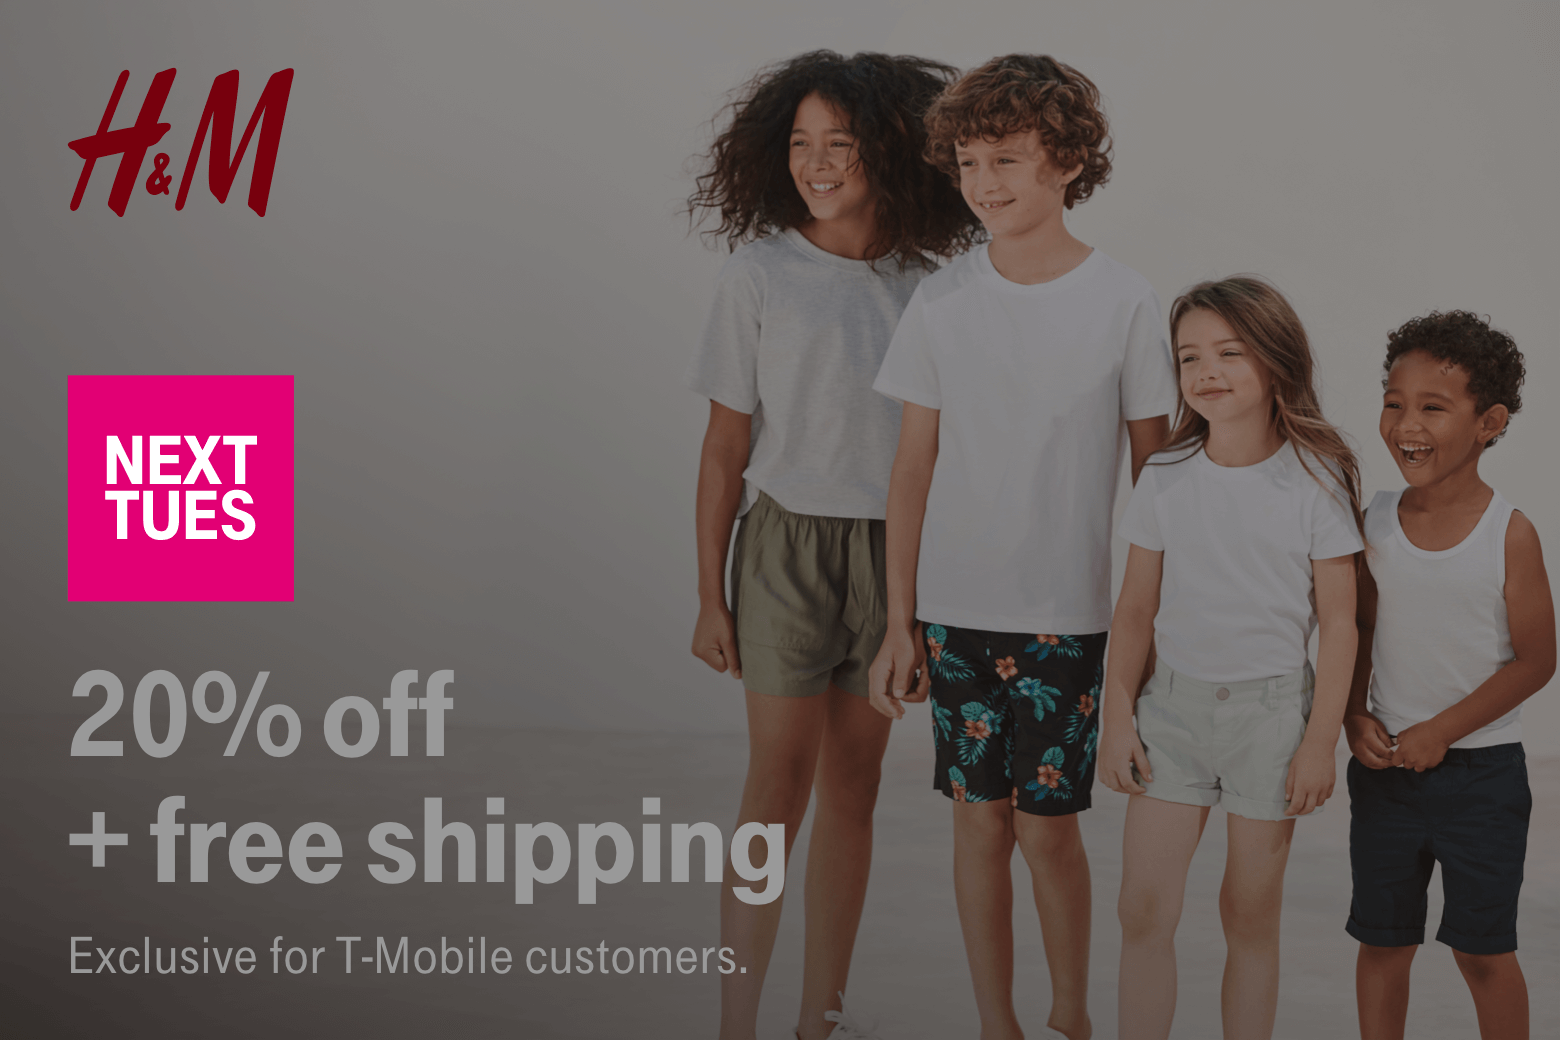 H&M. Next Tuesday. 20% off + free shipping. Exclusive for T-Mobile customers.